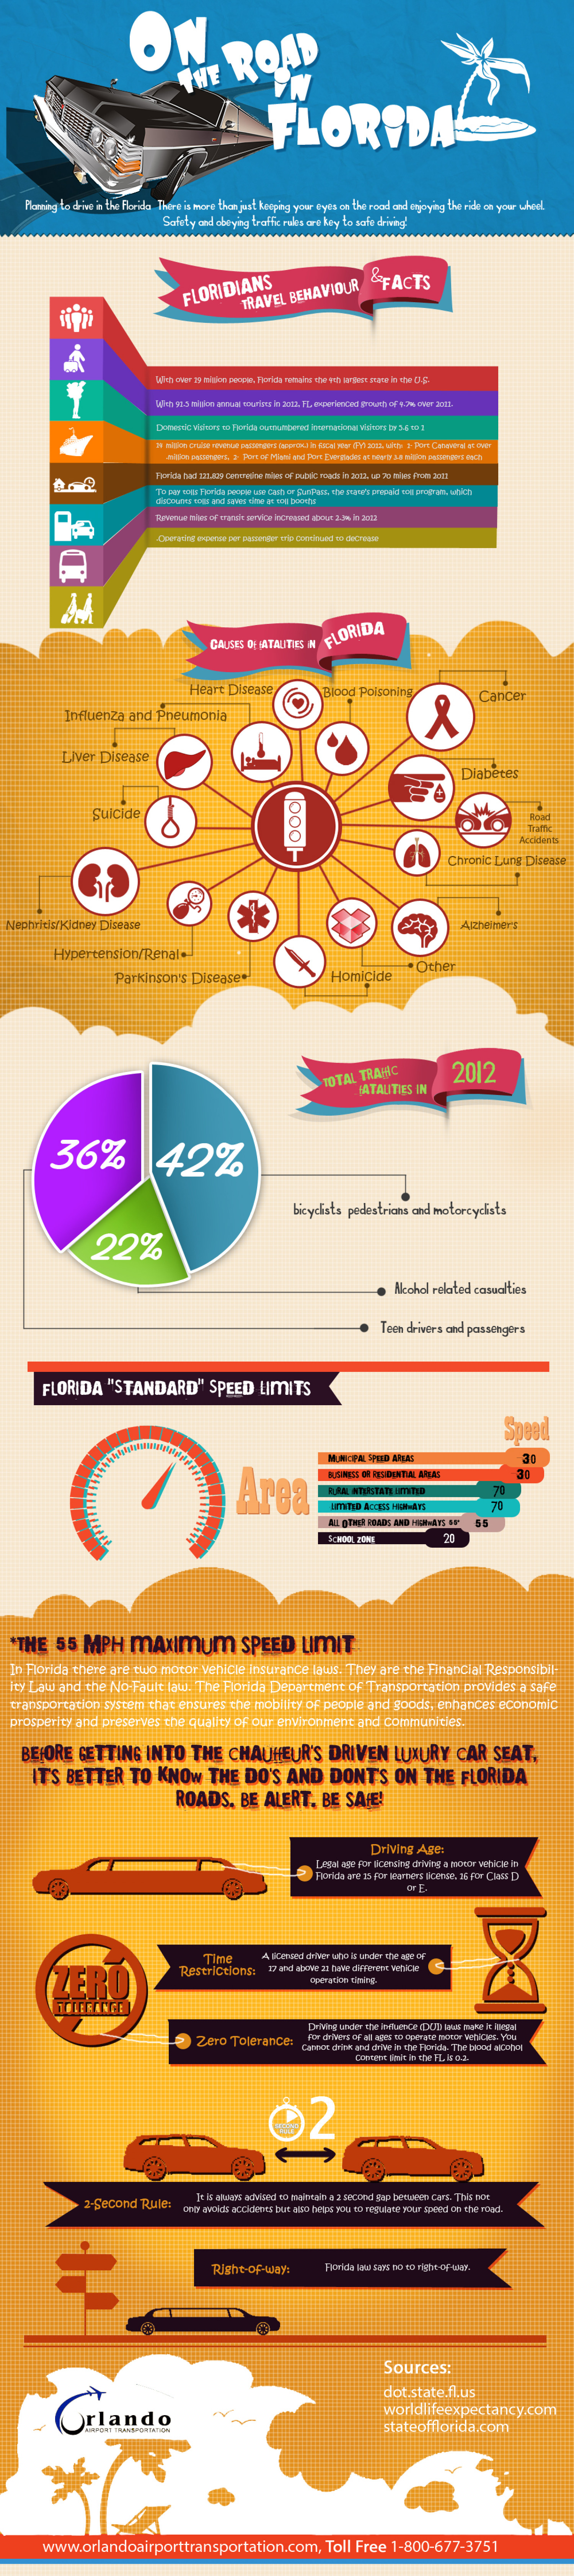 On The Road in Florida Infographic